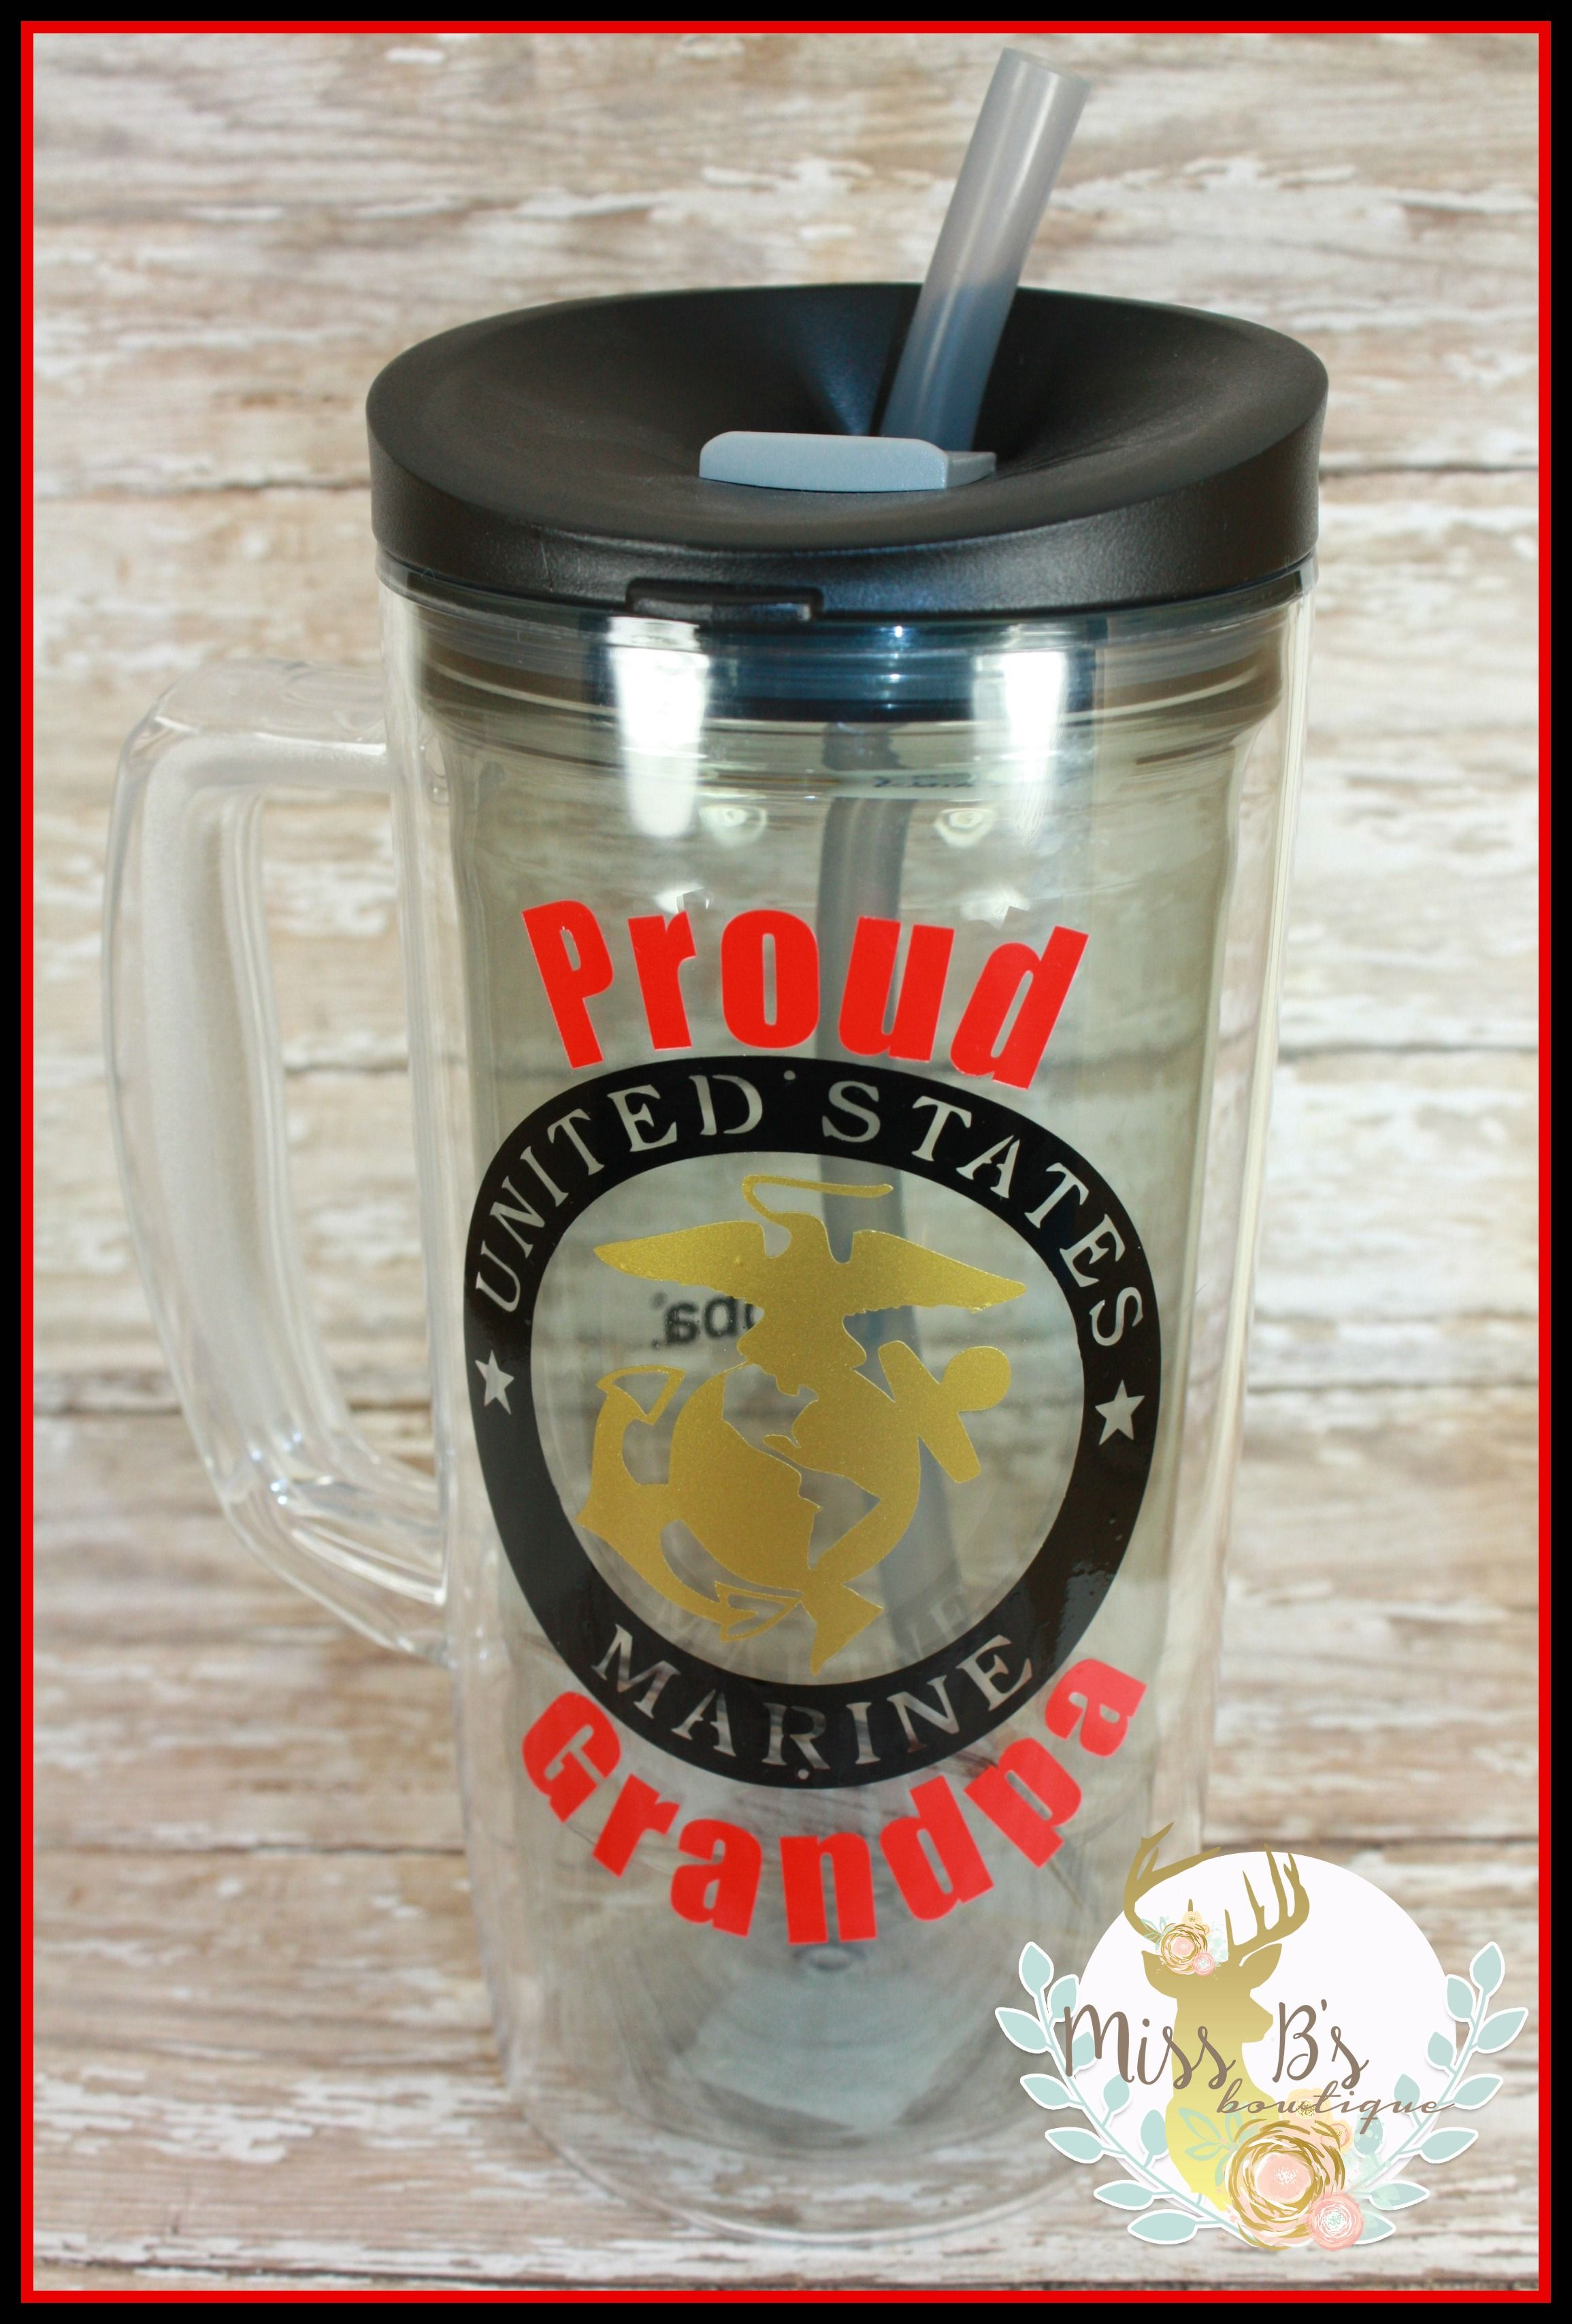 Proud Grandpa Marine Cup  Custom Cups with water decals to drink more water throughout the day!  #proudgrandpaofamarine #usmc #marinecorps #usmclogo #drinkmorewater #watercup #bubbacup #vinyl #gift #teachergift #monogram #summerdrinks   www.facebook.com/missbsbowtique05